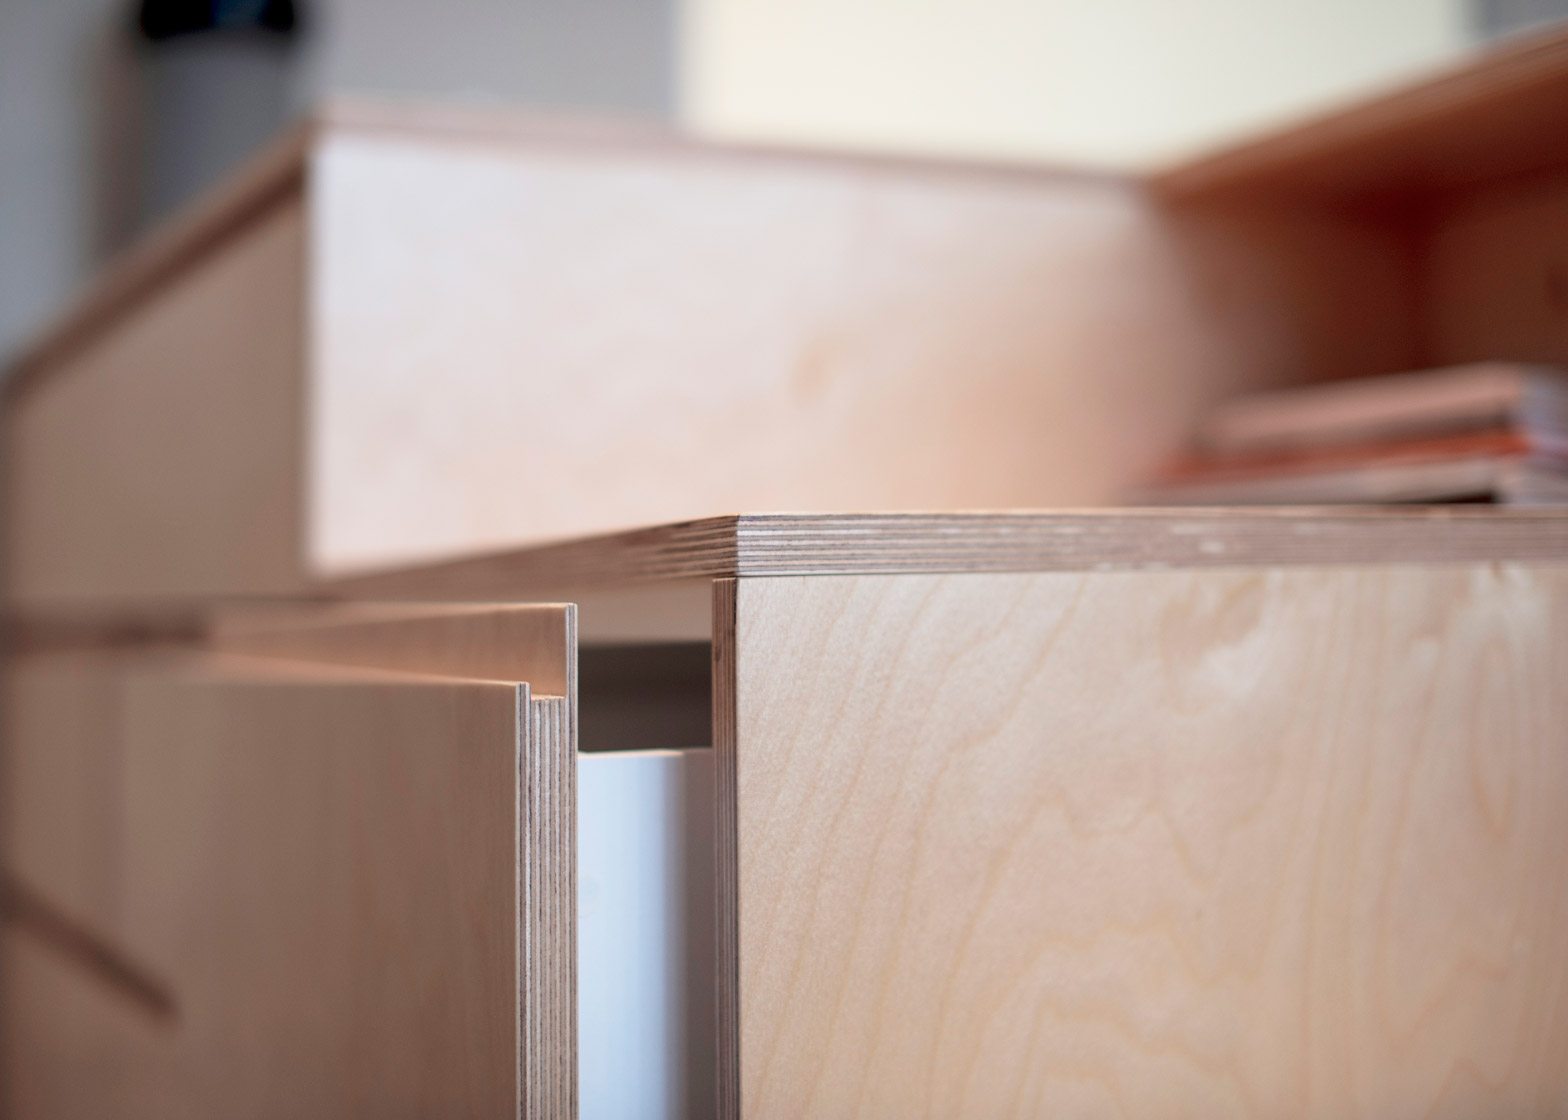 Air-BnP-home_Position-Collective_small-aparment_Budapest_Hungary_plywood_Balazs-Glodi_dezeen_1568_5